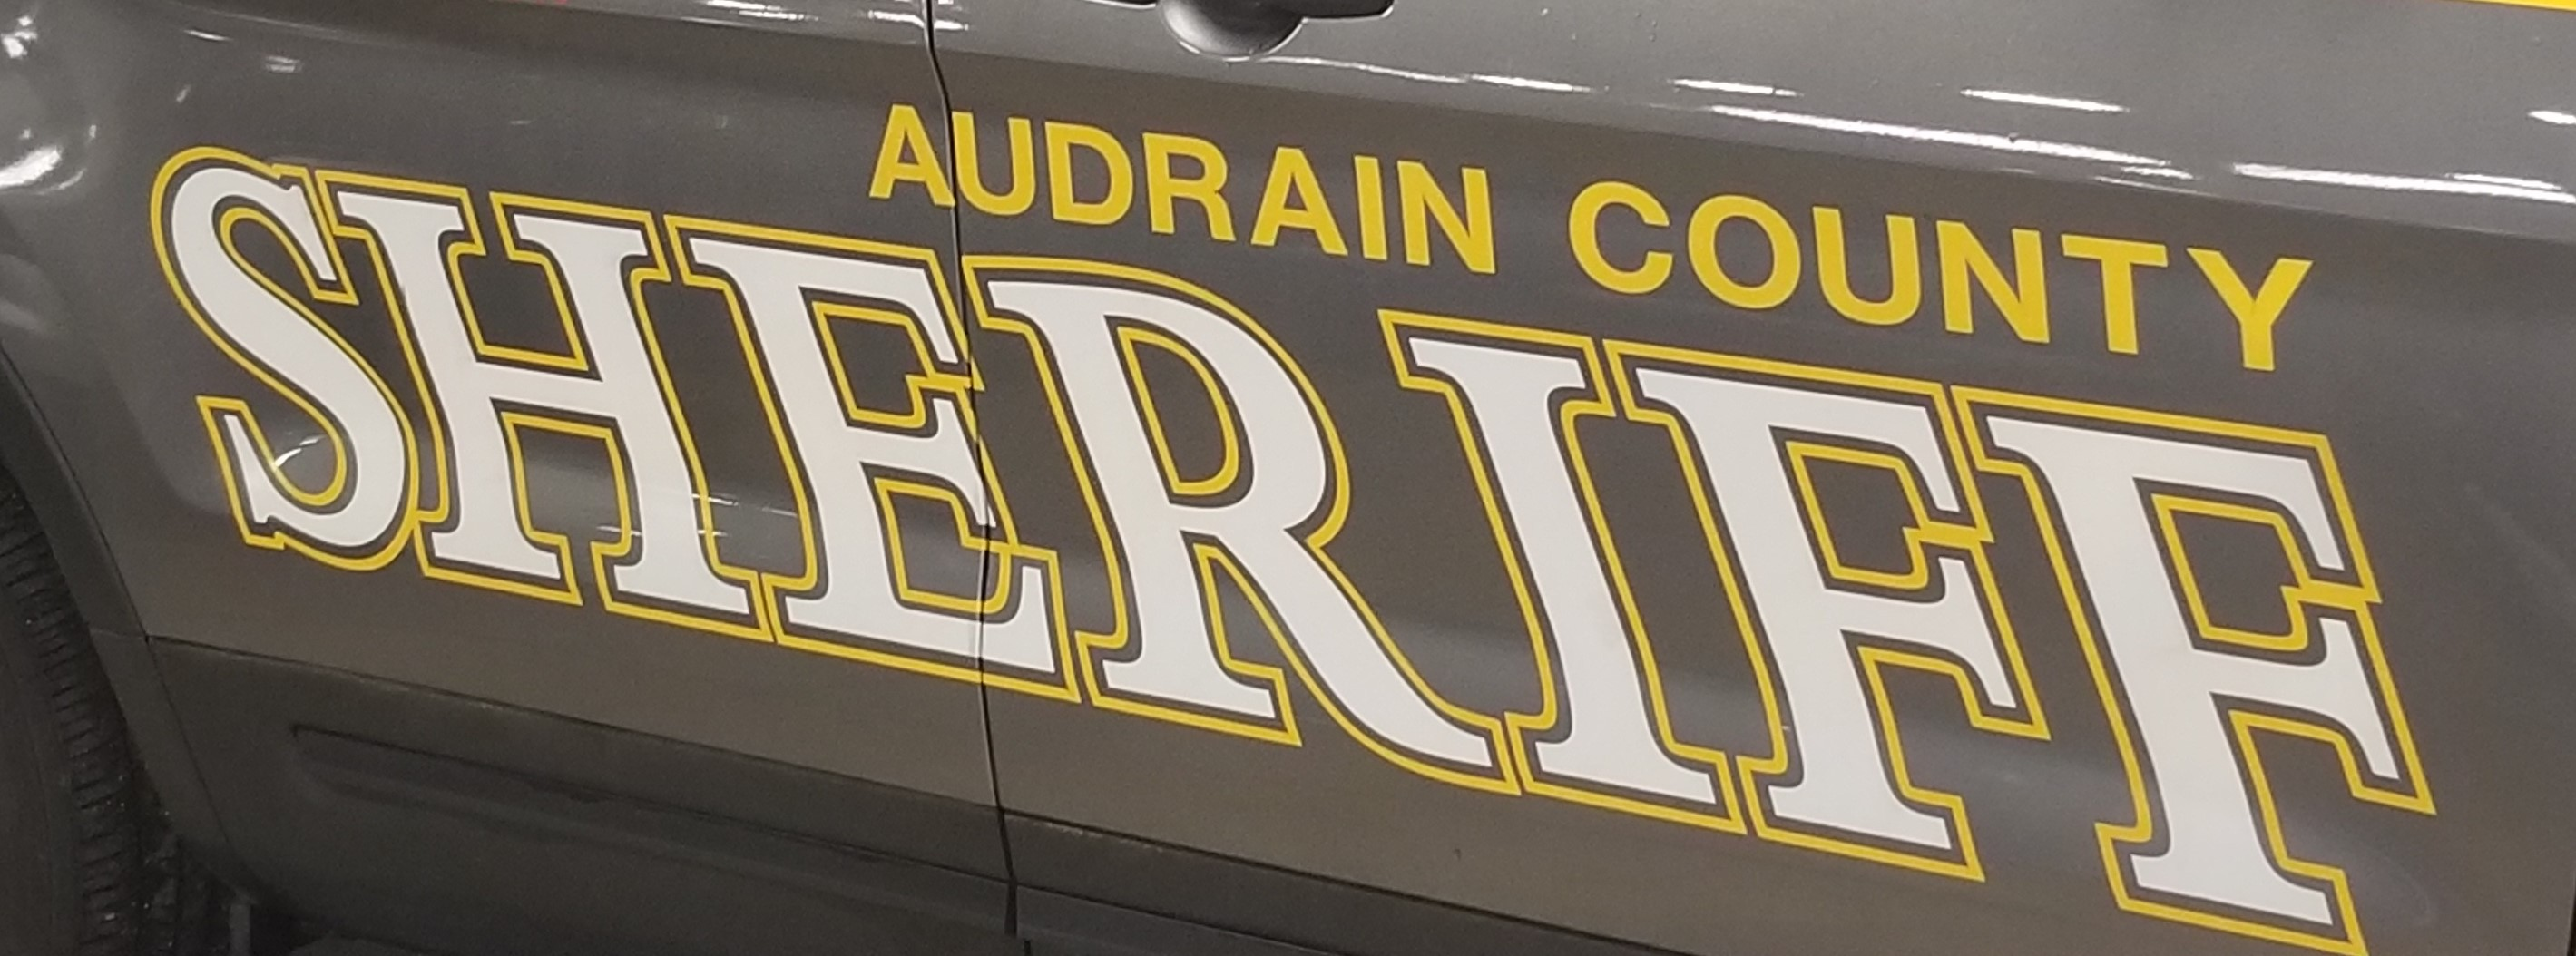 Man Accused Of Fleeing Audrain County Vehicle Pursuit Arrested During Probation Visit